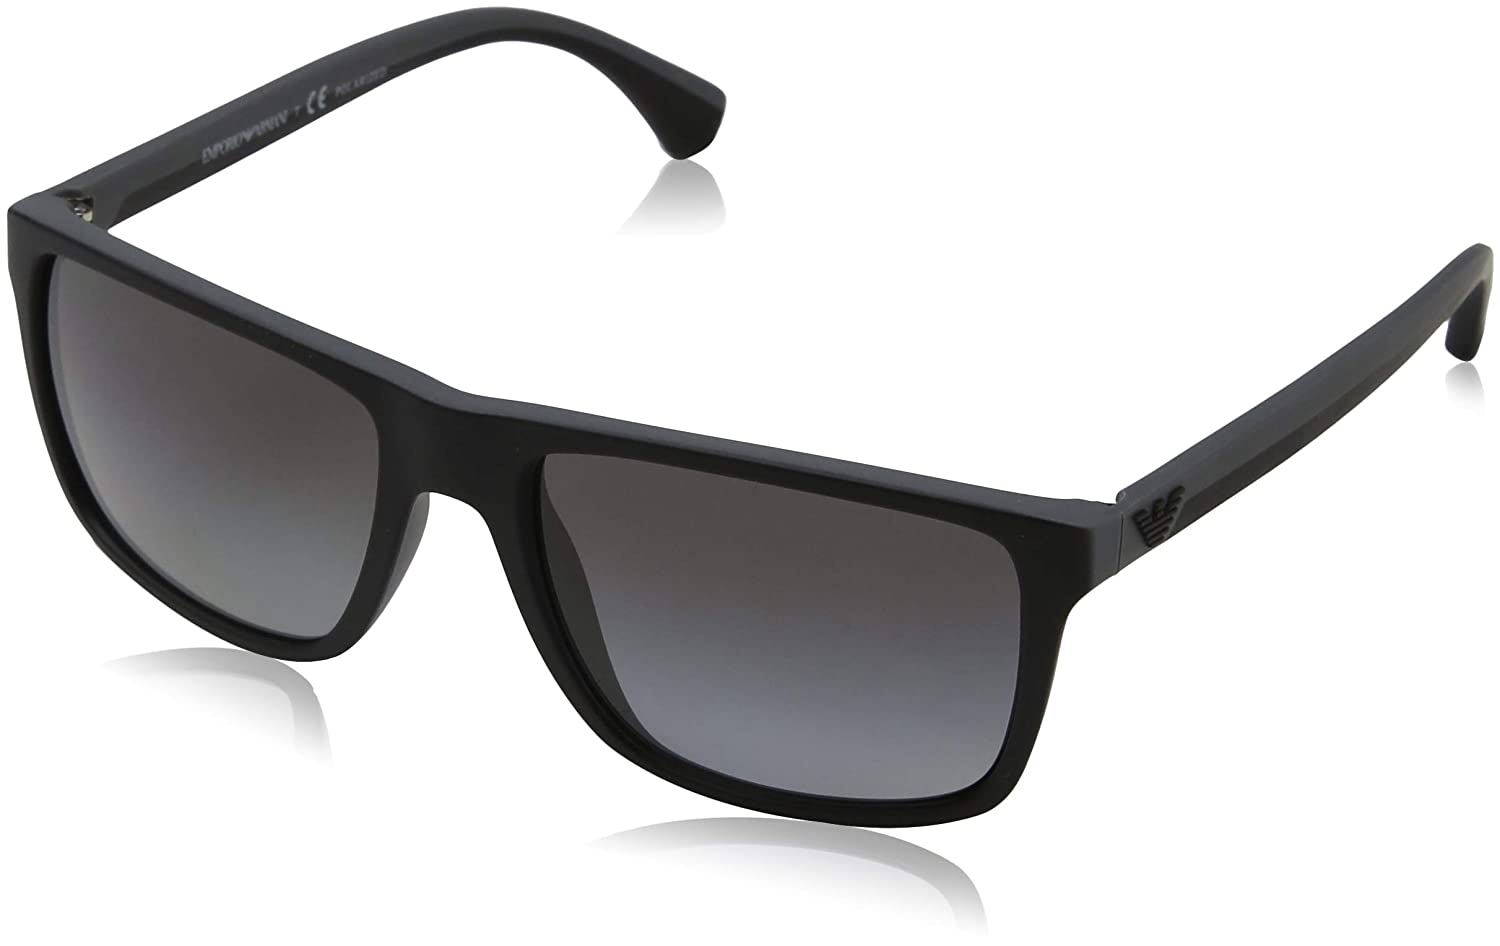 db1572d352 Emporio Armani EA 4033 Men s Sunglasses at Amazon Women s Clothing store